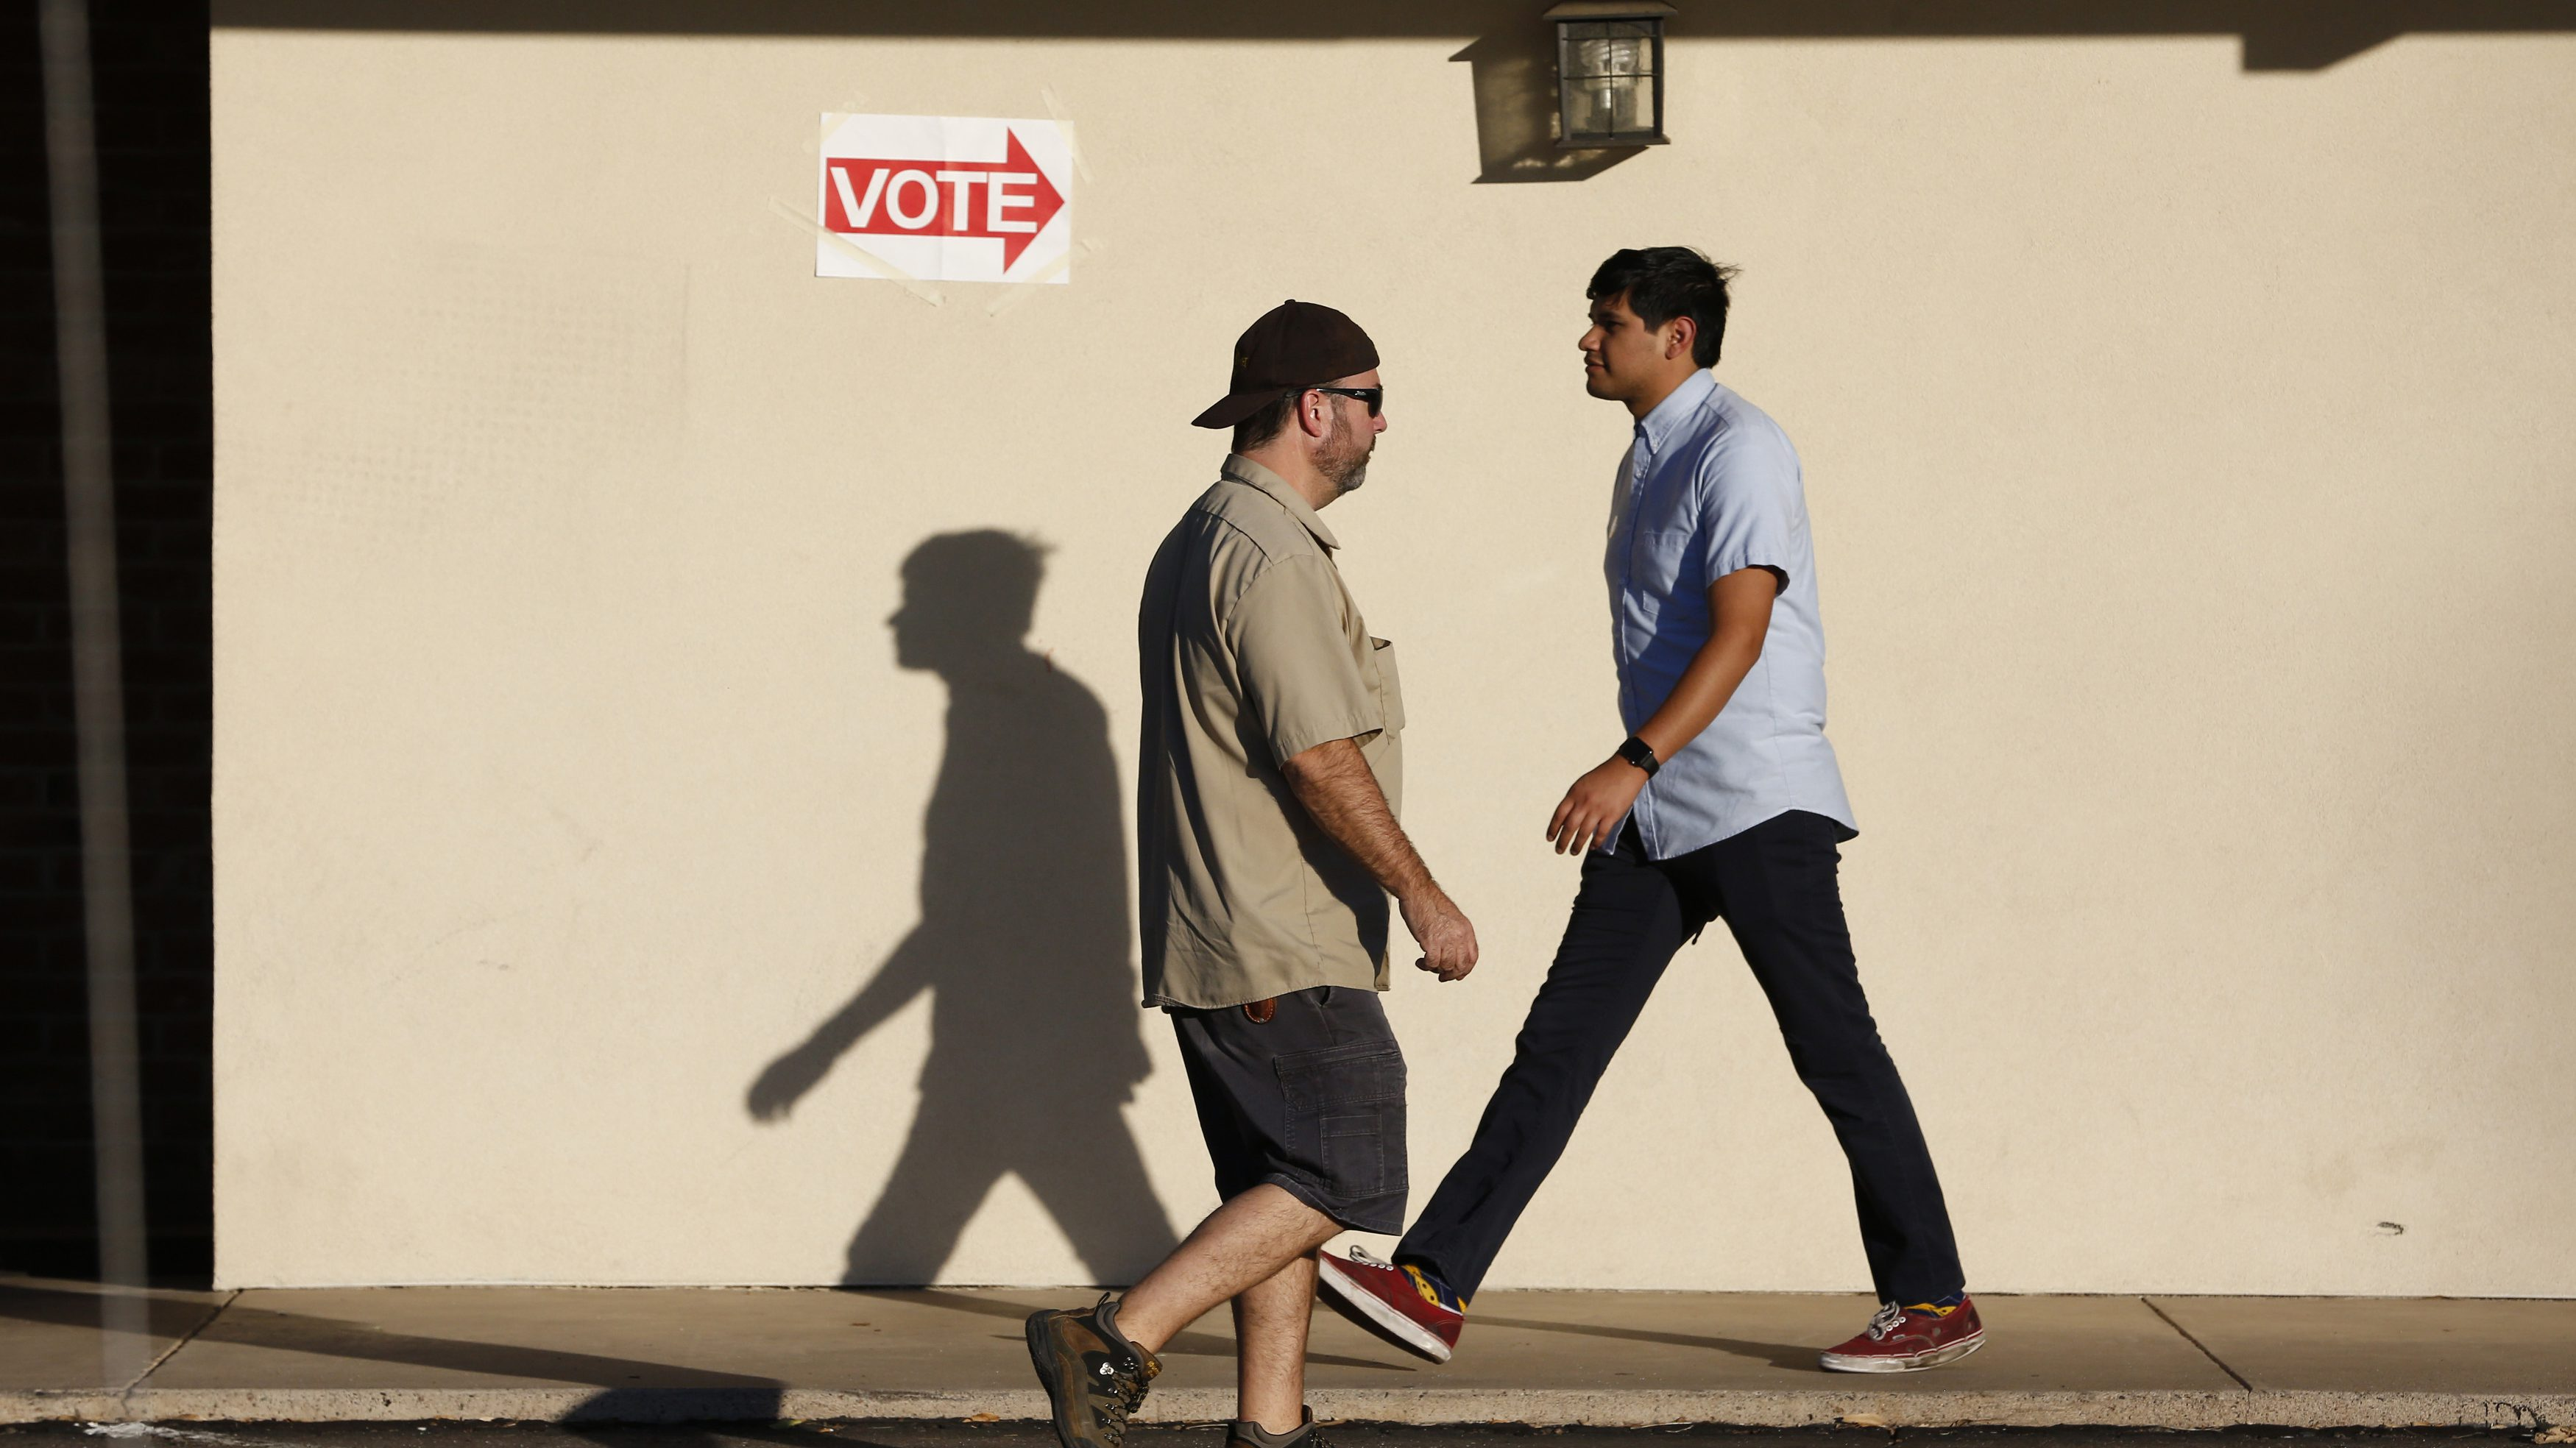 People come and go at a polling site during the U.S. presidential election in Phoenix, Arizona, U.S., November 8, 2016. REUTERS/Nancy Wiechec